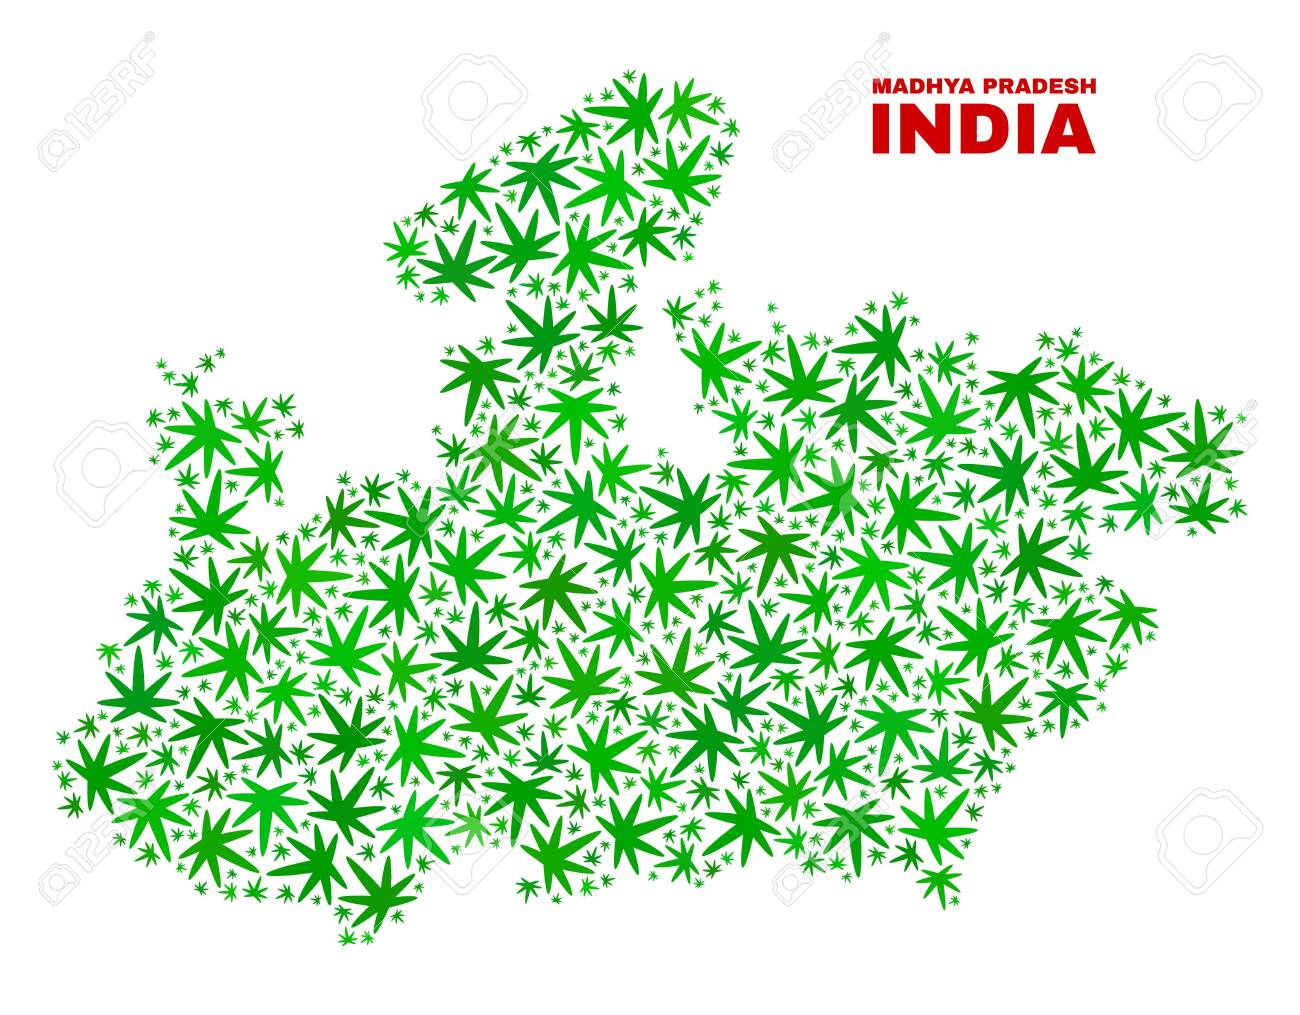 Vector cannabis Madhya Pradesh State map collage. Concept with.. on jharkhand state map, gujarat state map, orissa state map, bihar state map, haryana state map, chhattisgarh state map, kerala state map, assam state map, tamil nadu state map, telangana state map, bengal state map, maharashtra state map, karnataka state map, punjab state map, uttaranchal state map, andhra state map,